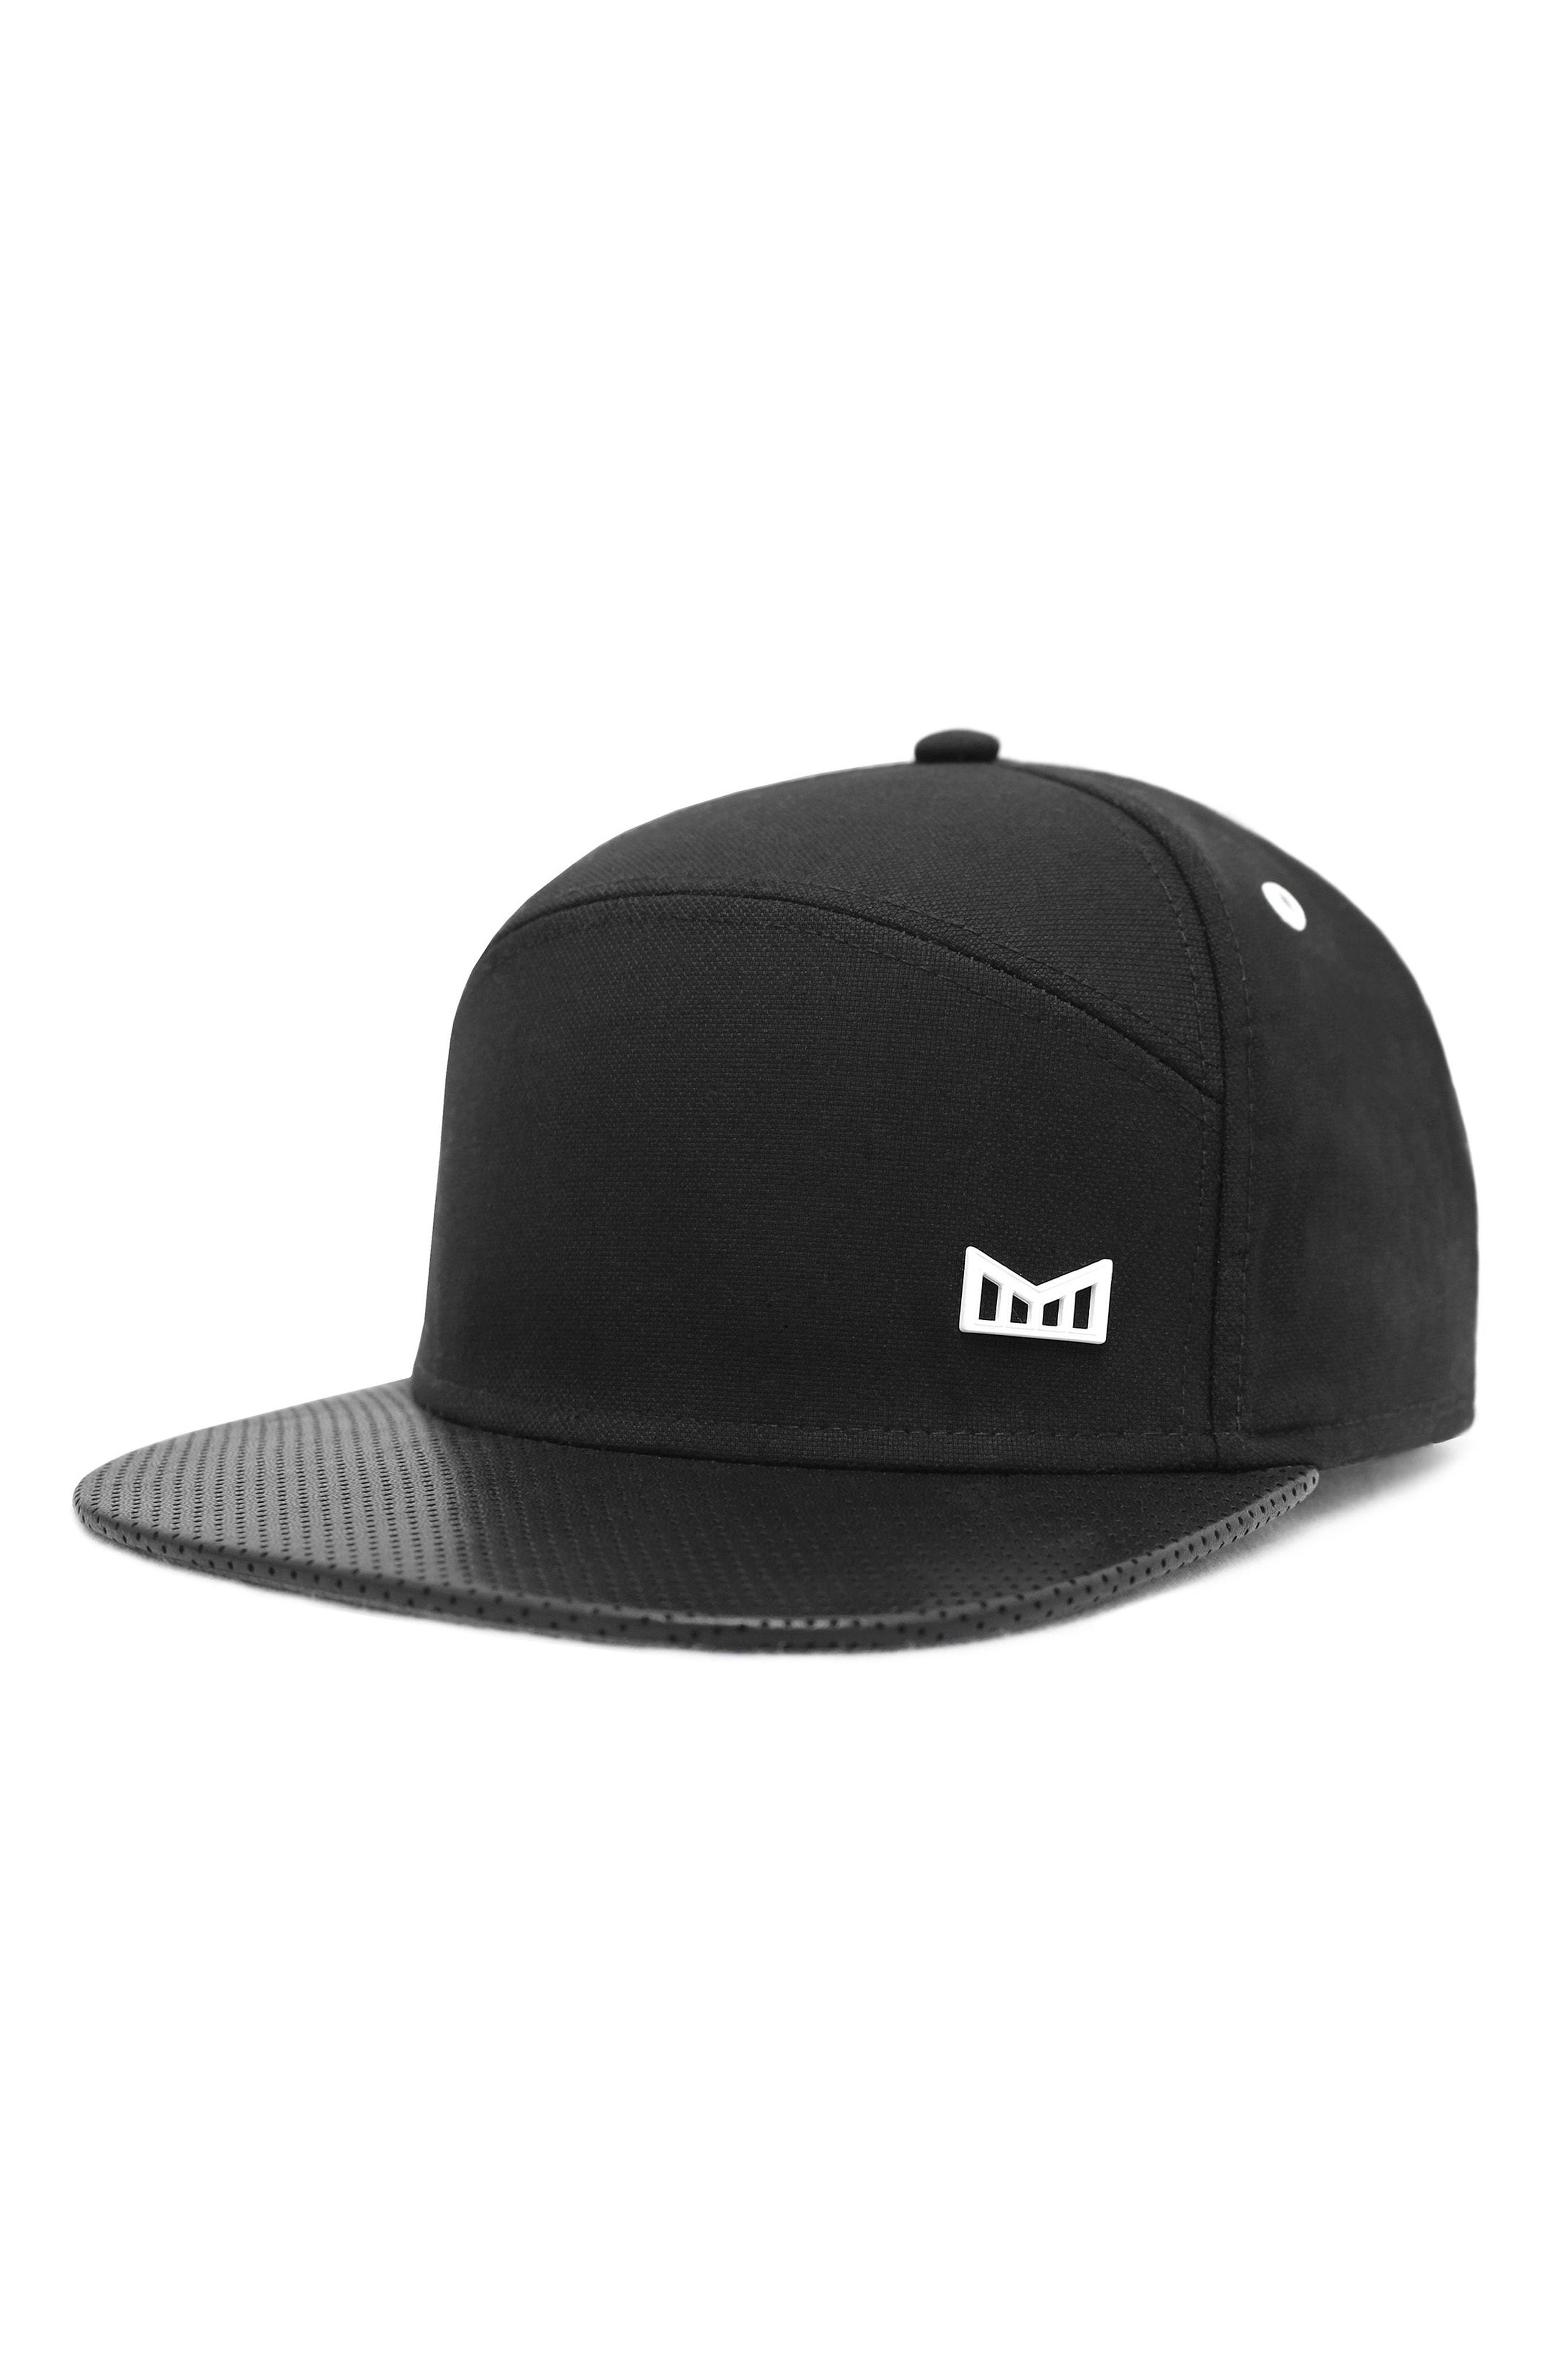 3ee3e6e2342 Lyst - Melin  the Vision  Horizon Fit Flat Brim Baseball Cap in ...